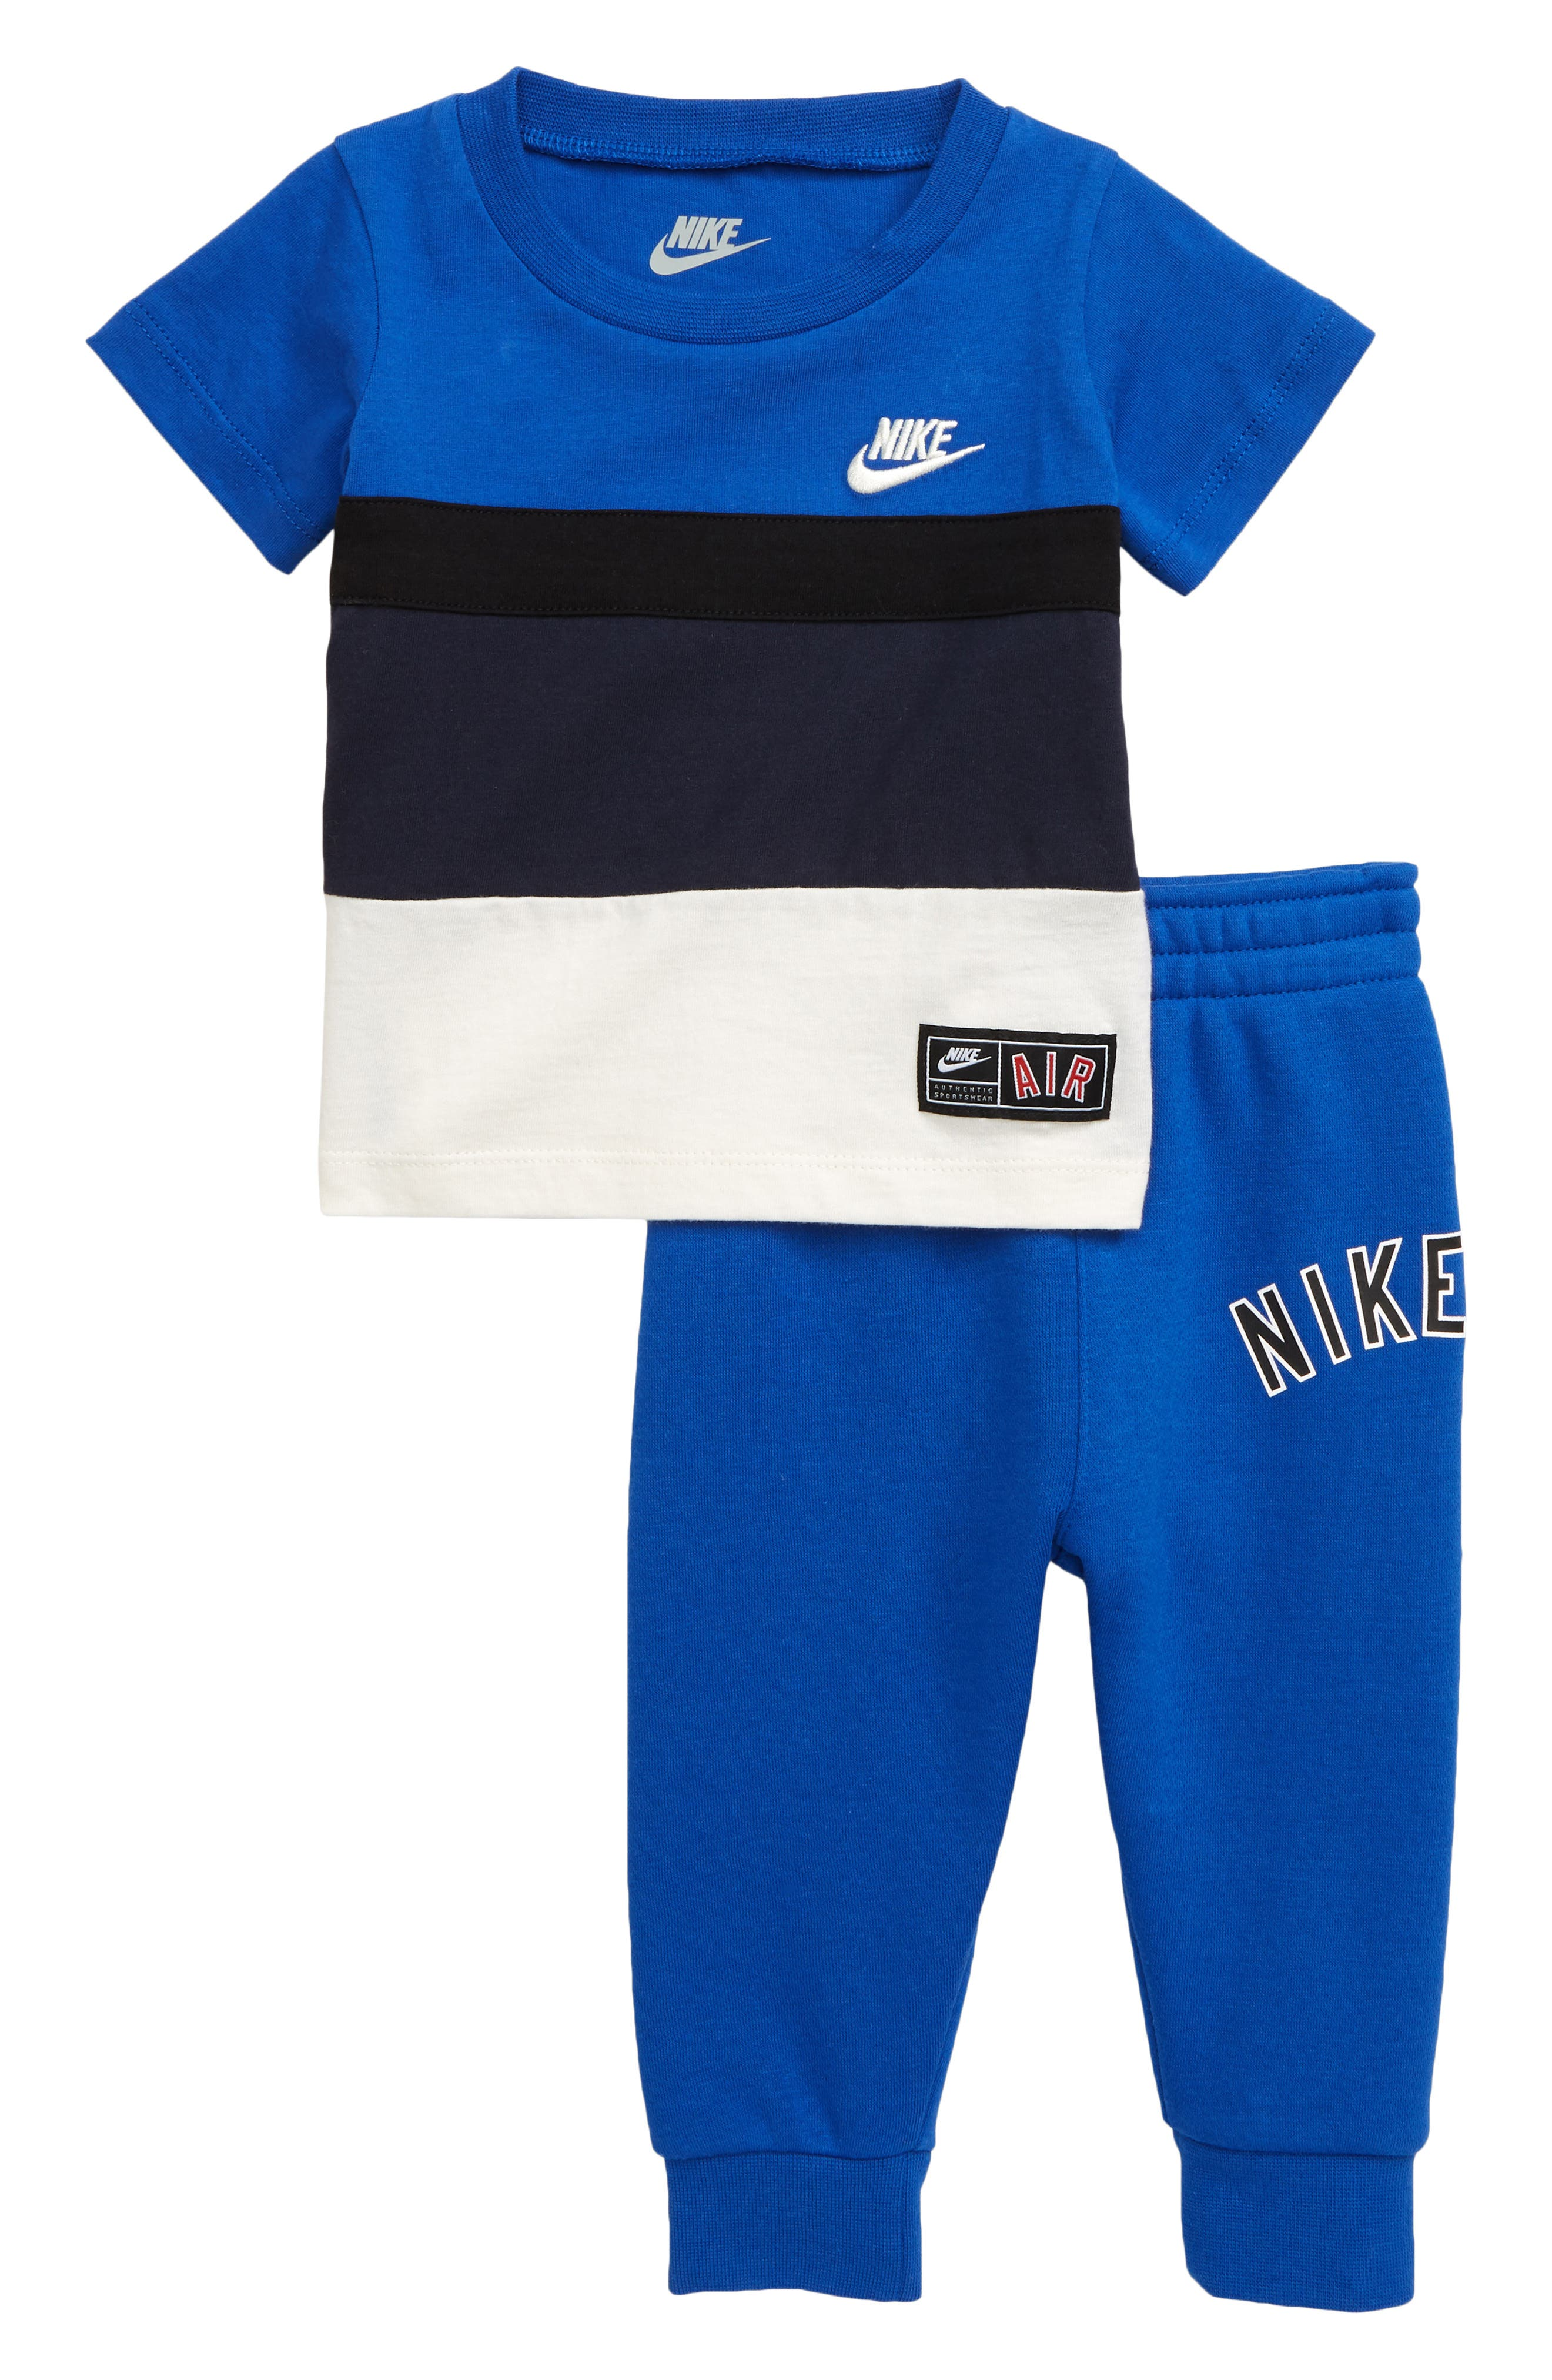 sale retailer 300ce 1ce9c Nike Baby Clothing   Nordstrom